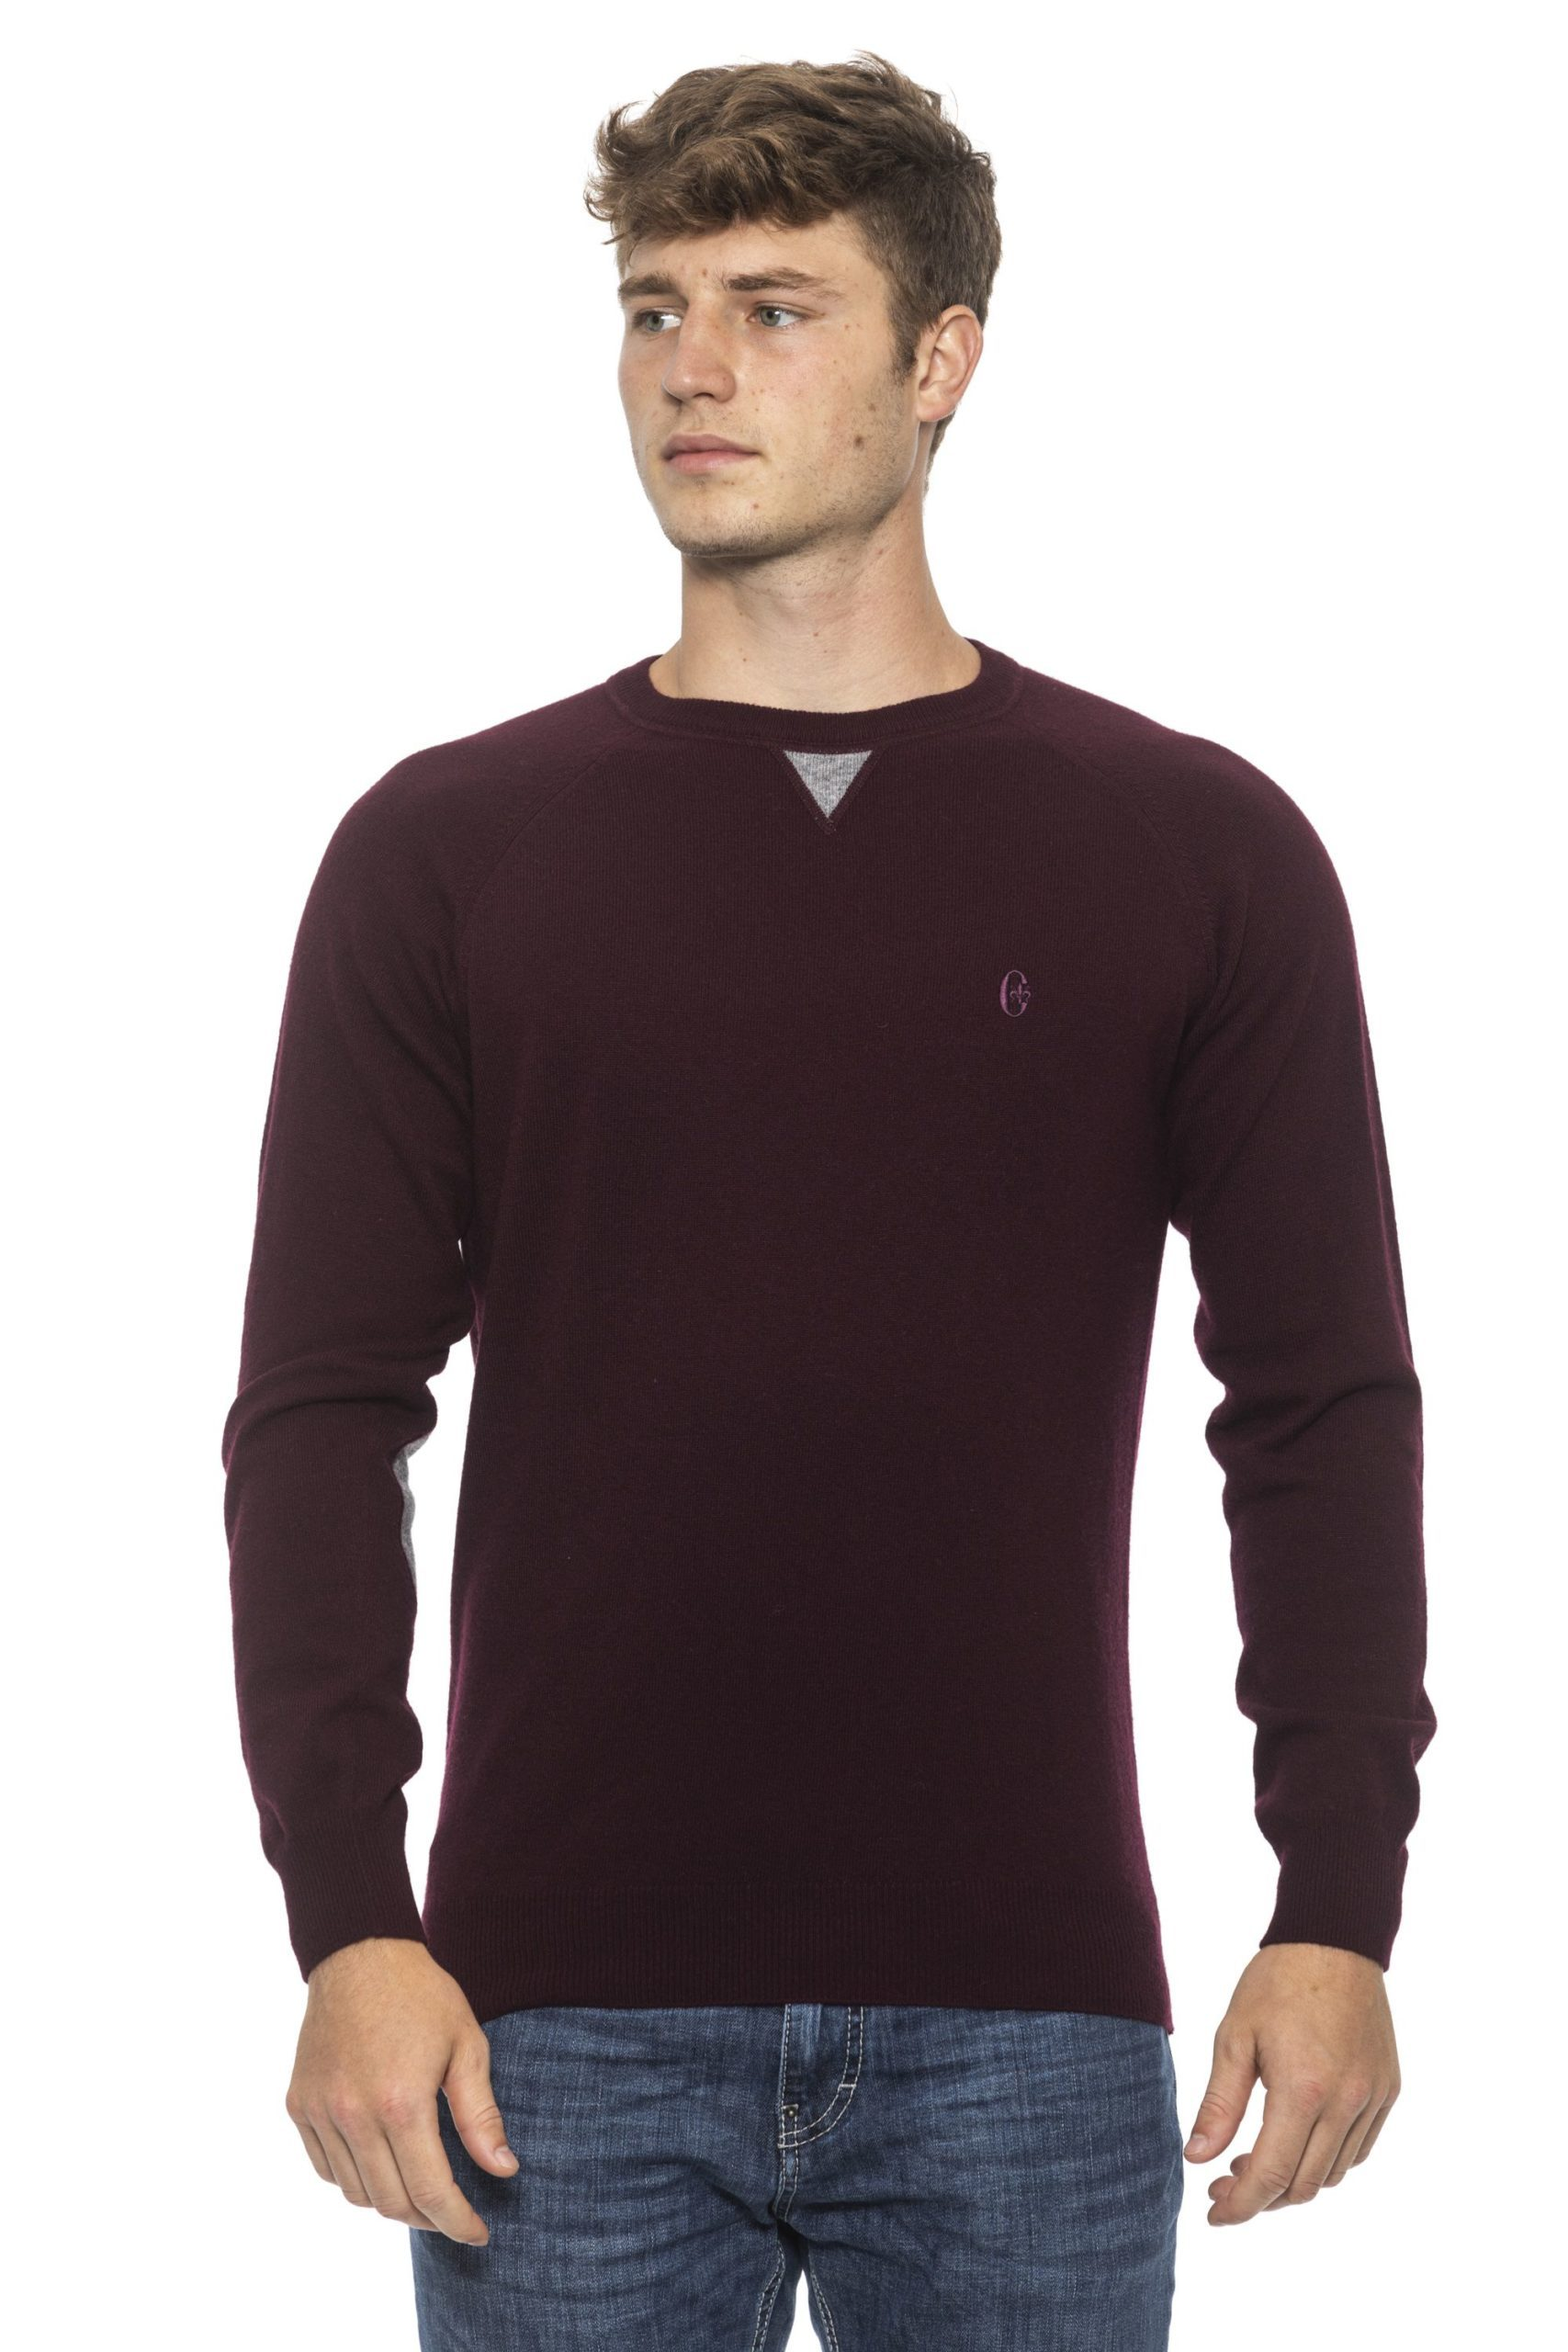 Conte of Florence Men's Sweater Burgundy CO1272757 - S